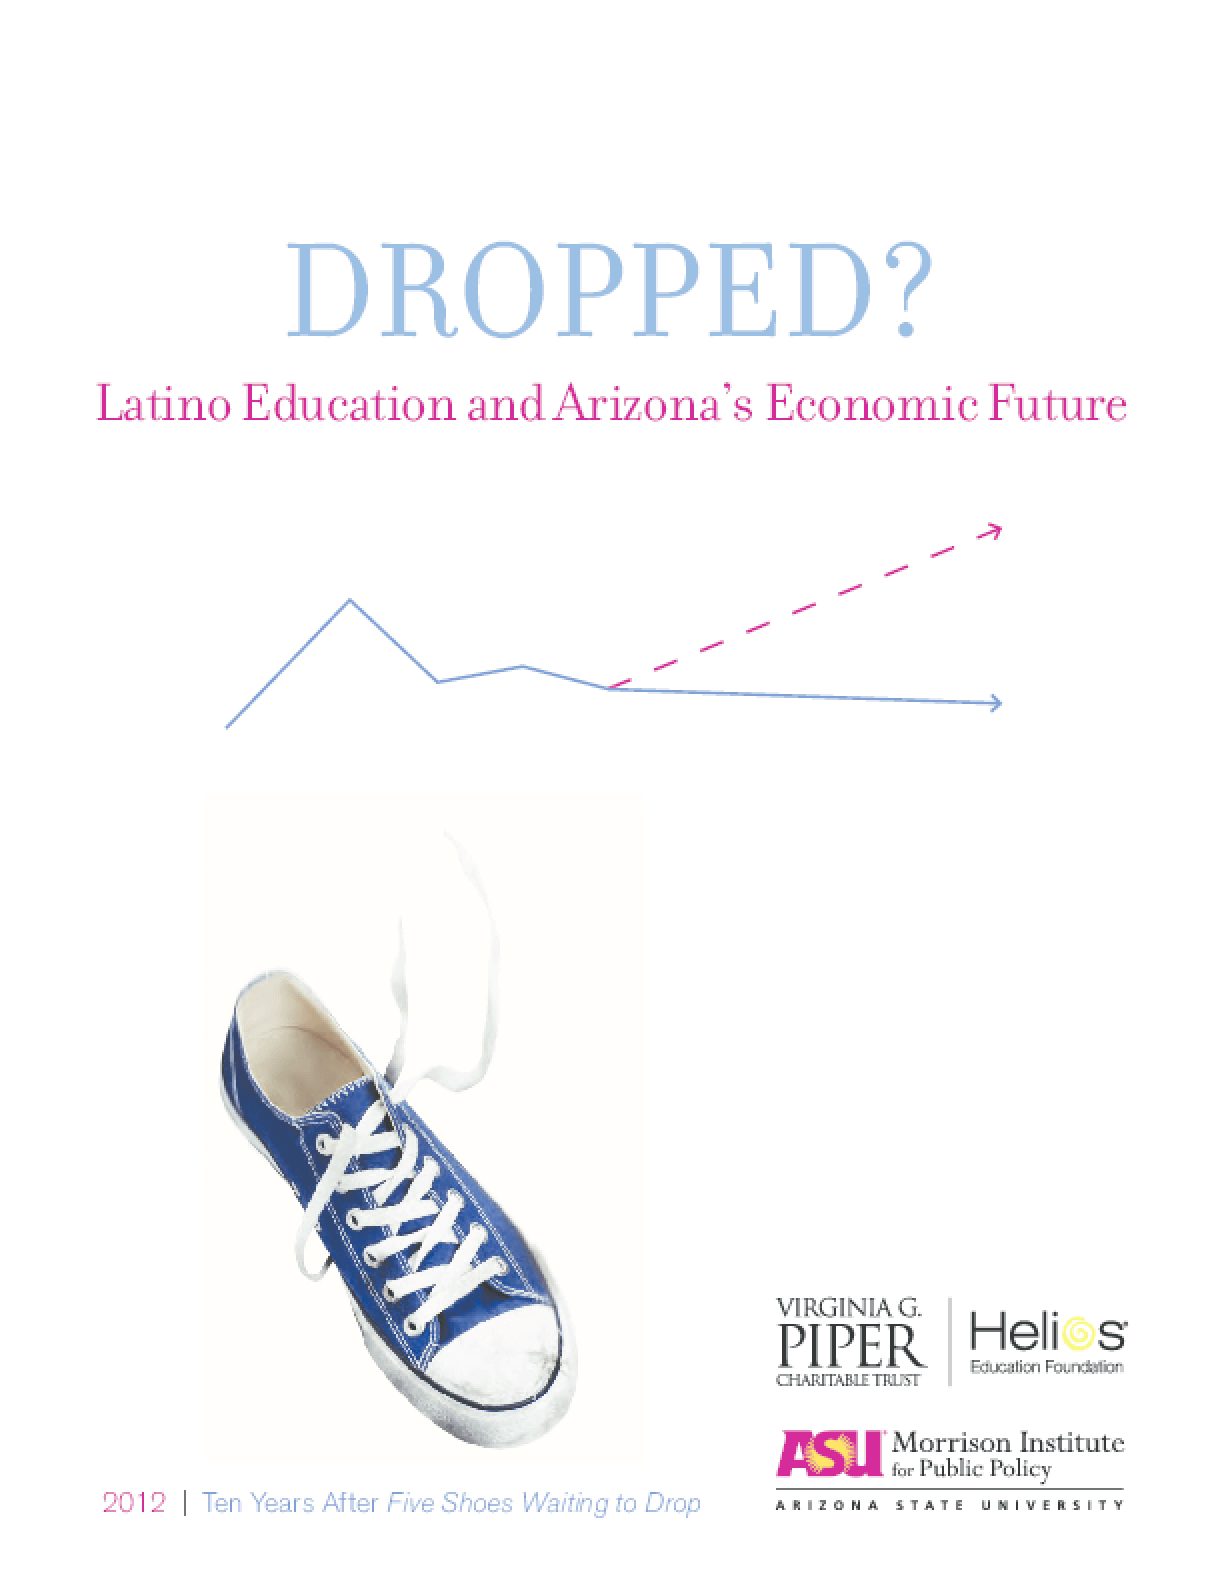 Dropped? Latino Education and Arizona's Economic Future